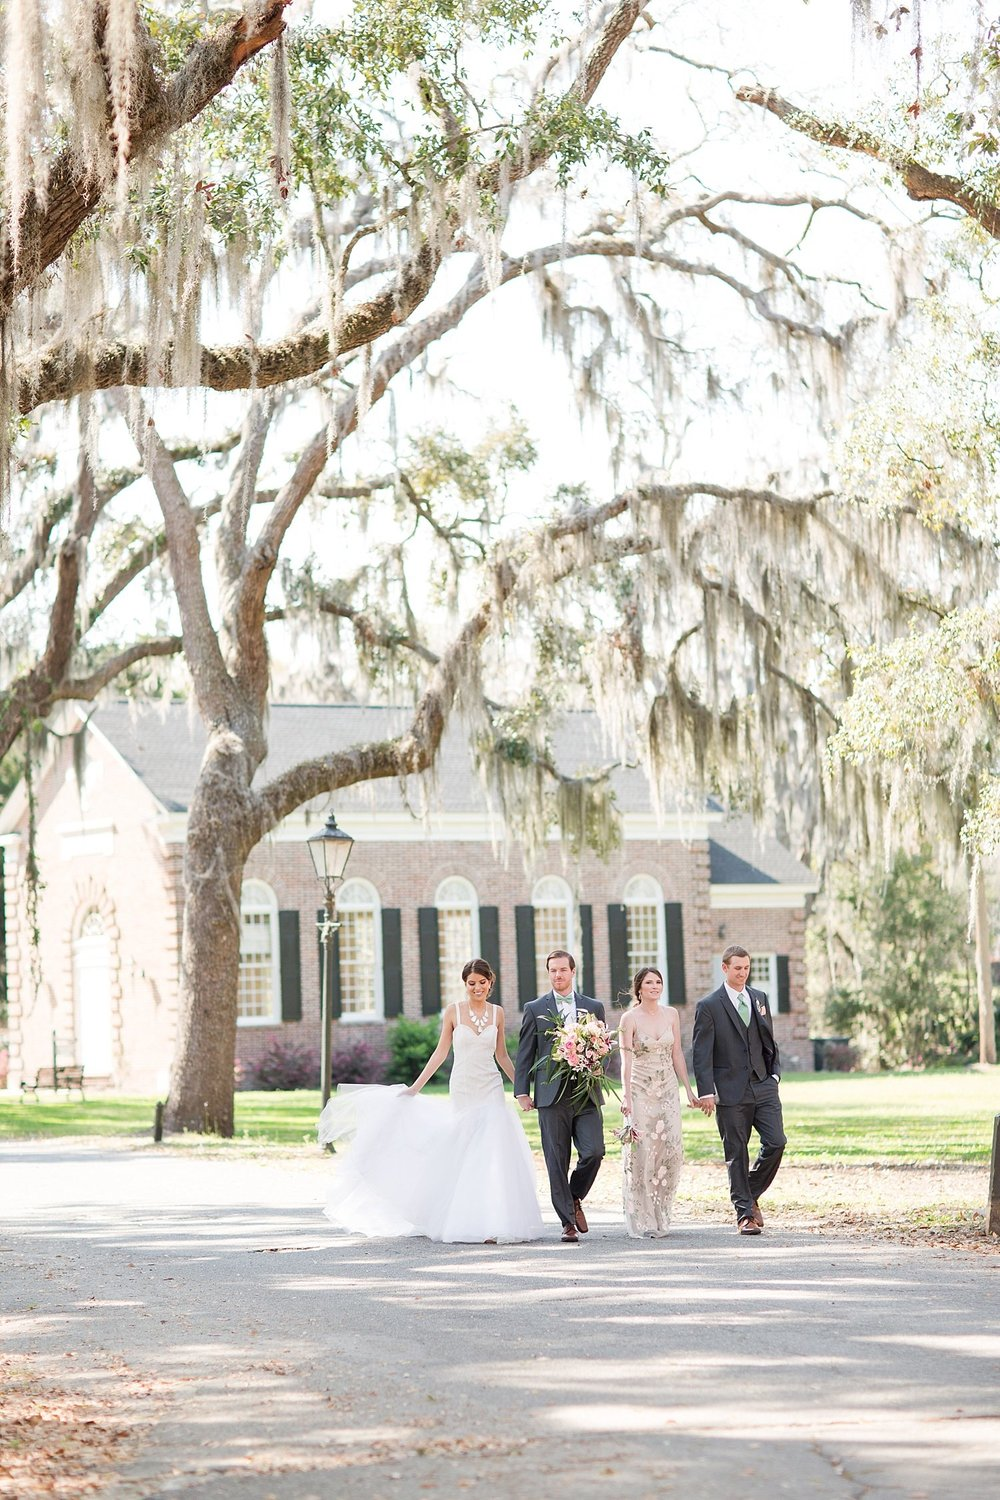 rachel-strickland-photography-katie-may-ivory-and-beau-bridal-boutique-bethesda-academy-wedding-whitfield-chapel-wedding-savannah-bridal-boutique-savannah-weddings-savannah-wedding-savannah-wedding-planner-savannah-bridal-gowns-savannah-bride-20.jpg